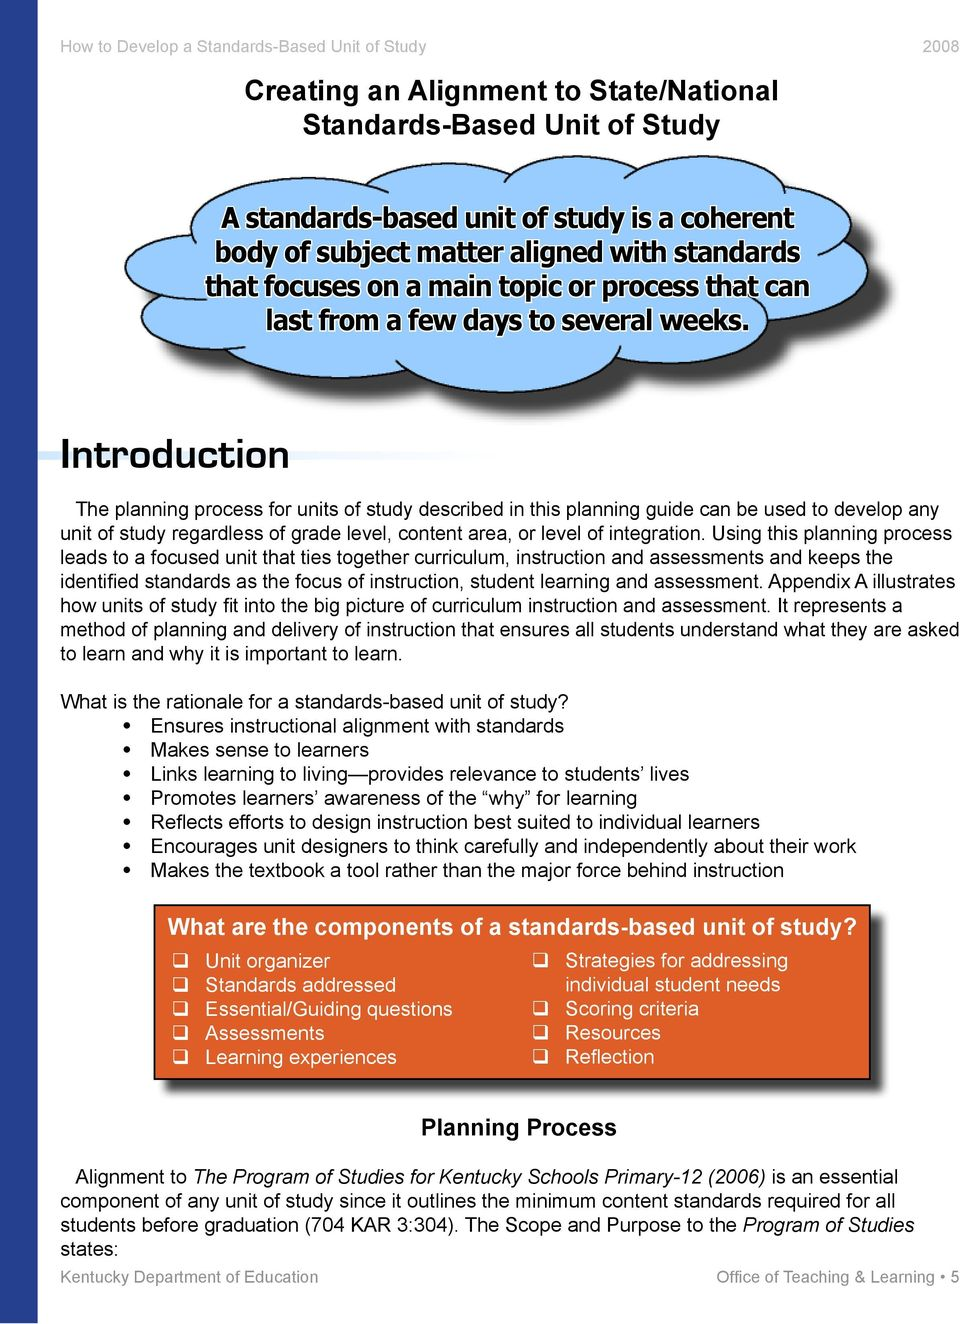 Introduction The planning process for units of study described in this planning guide can be used to develop any unit of study regardless of grade level, content area, or level of integration.